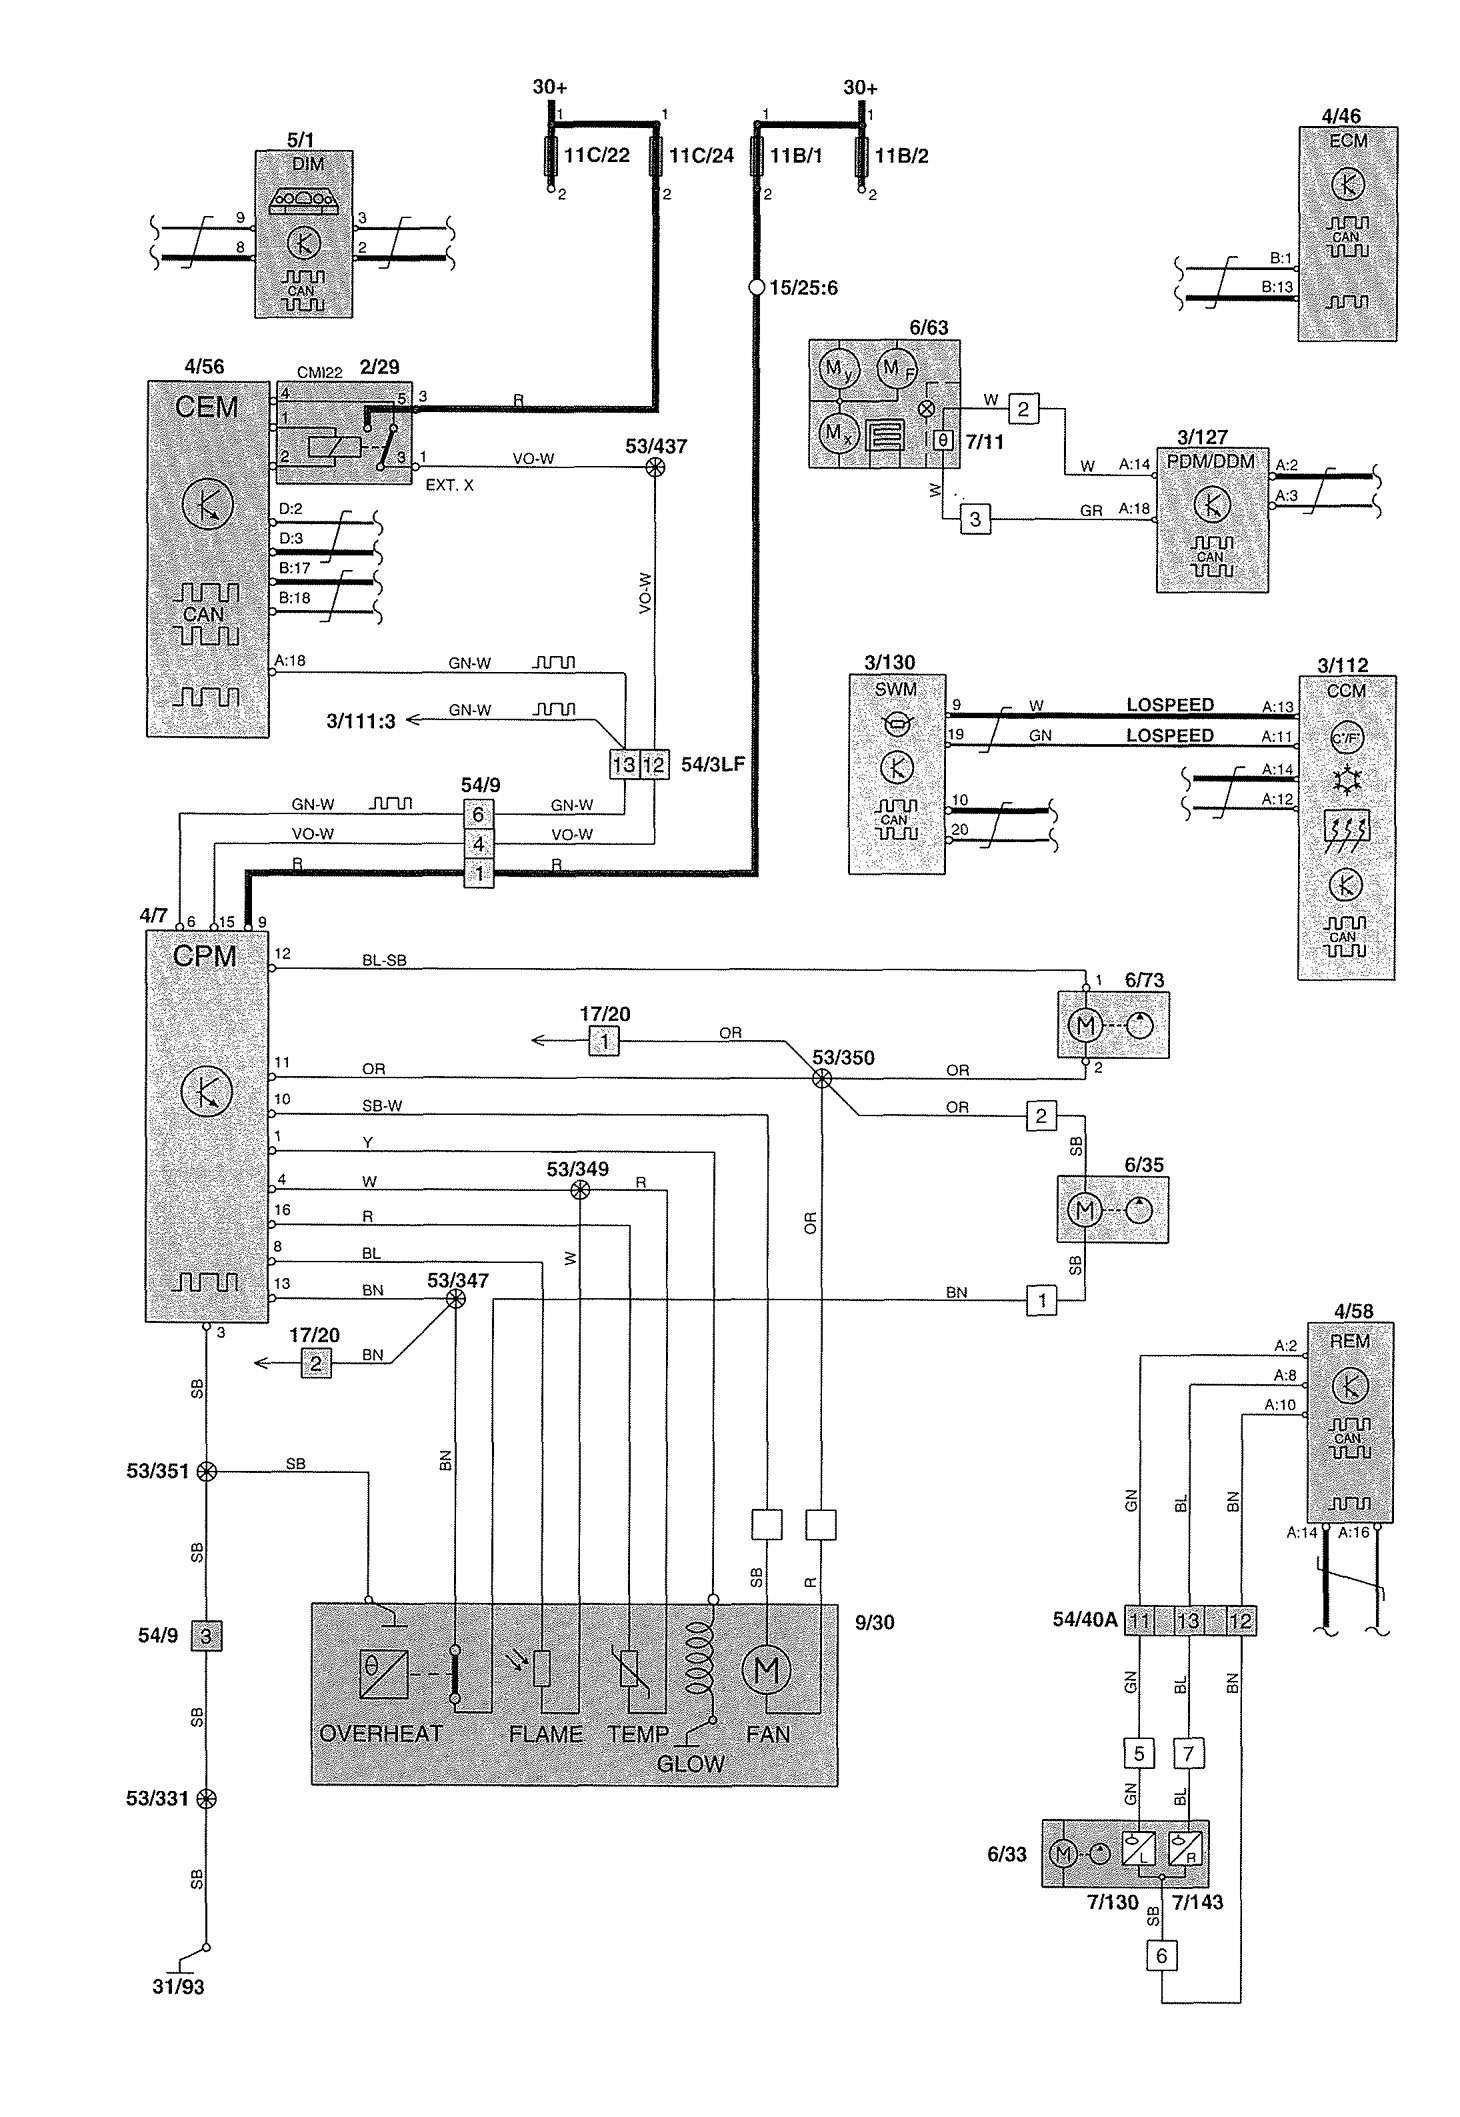 Volvo S70 Wiring Diagram Pdf Diagrams For 1999 V70 Engine Radio Auto 1998